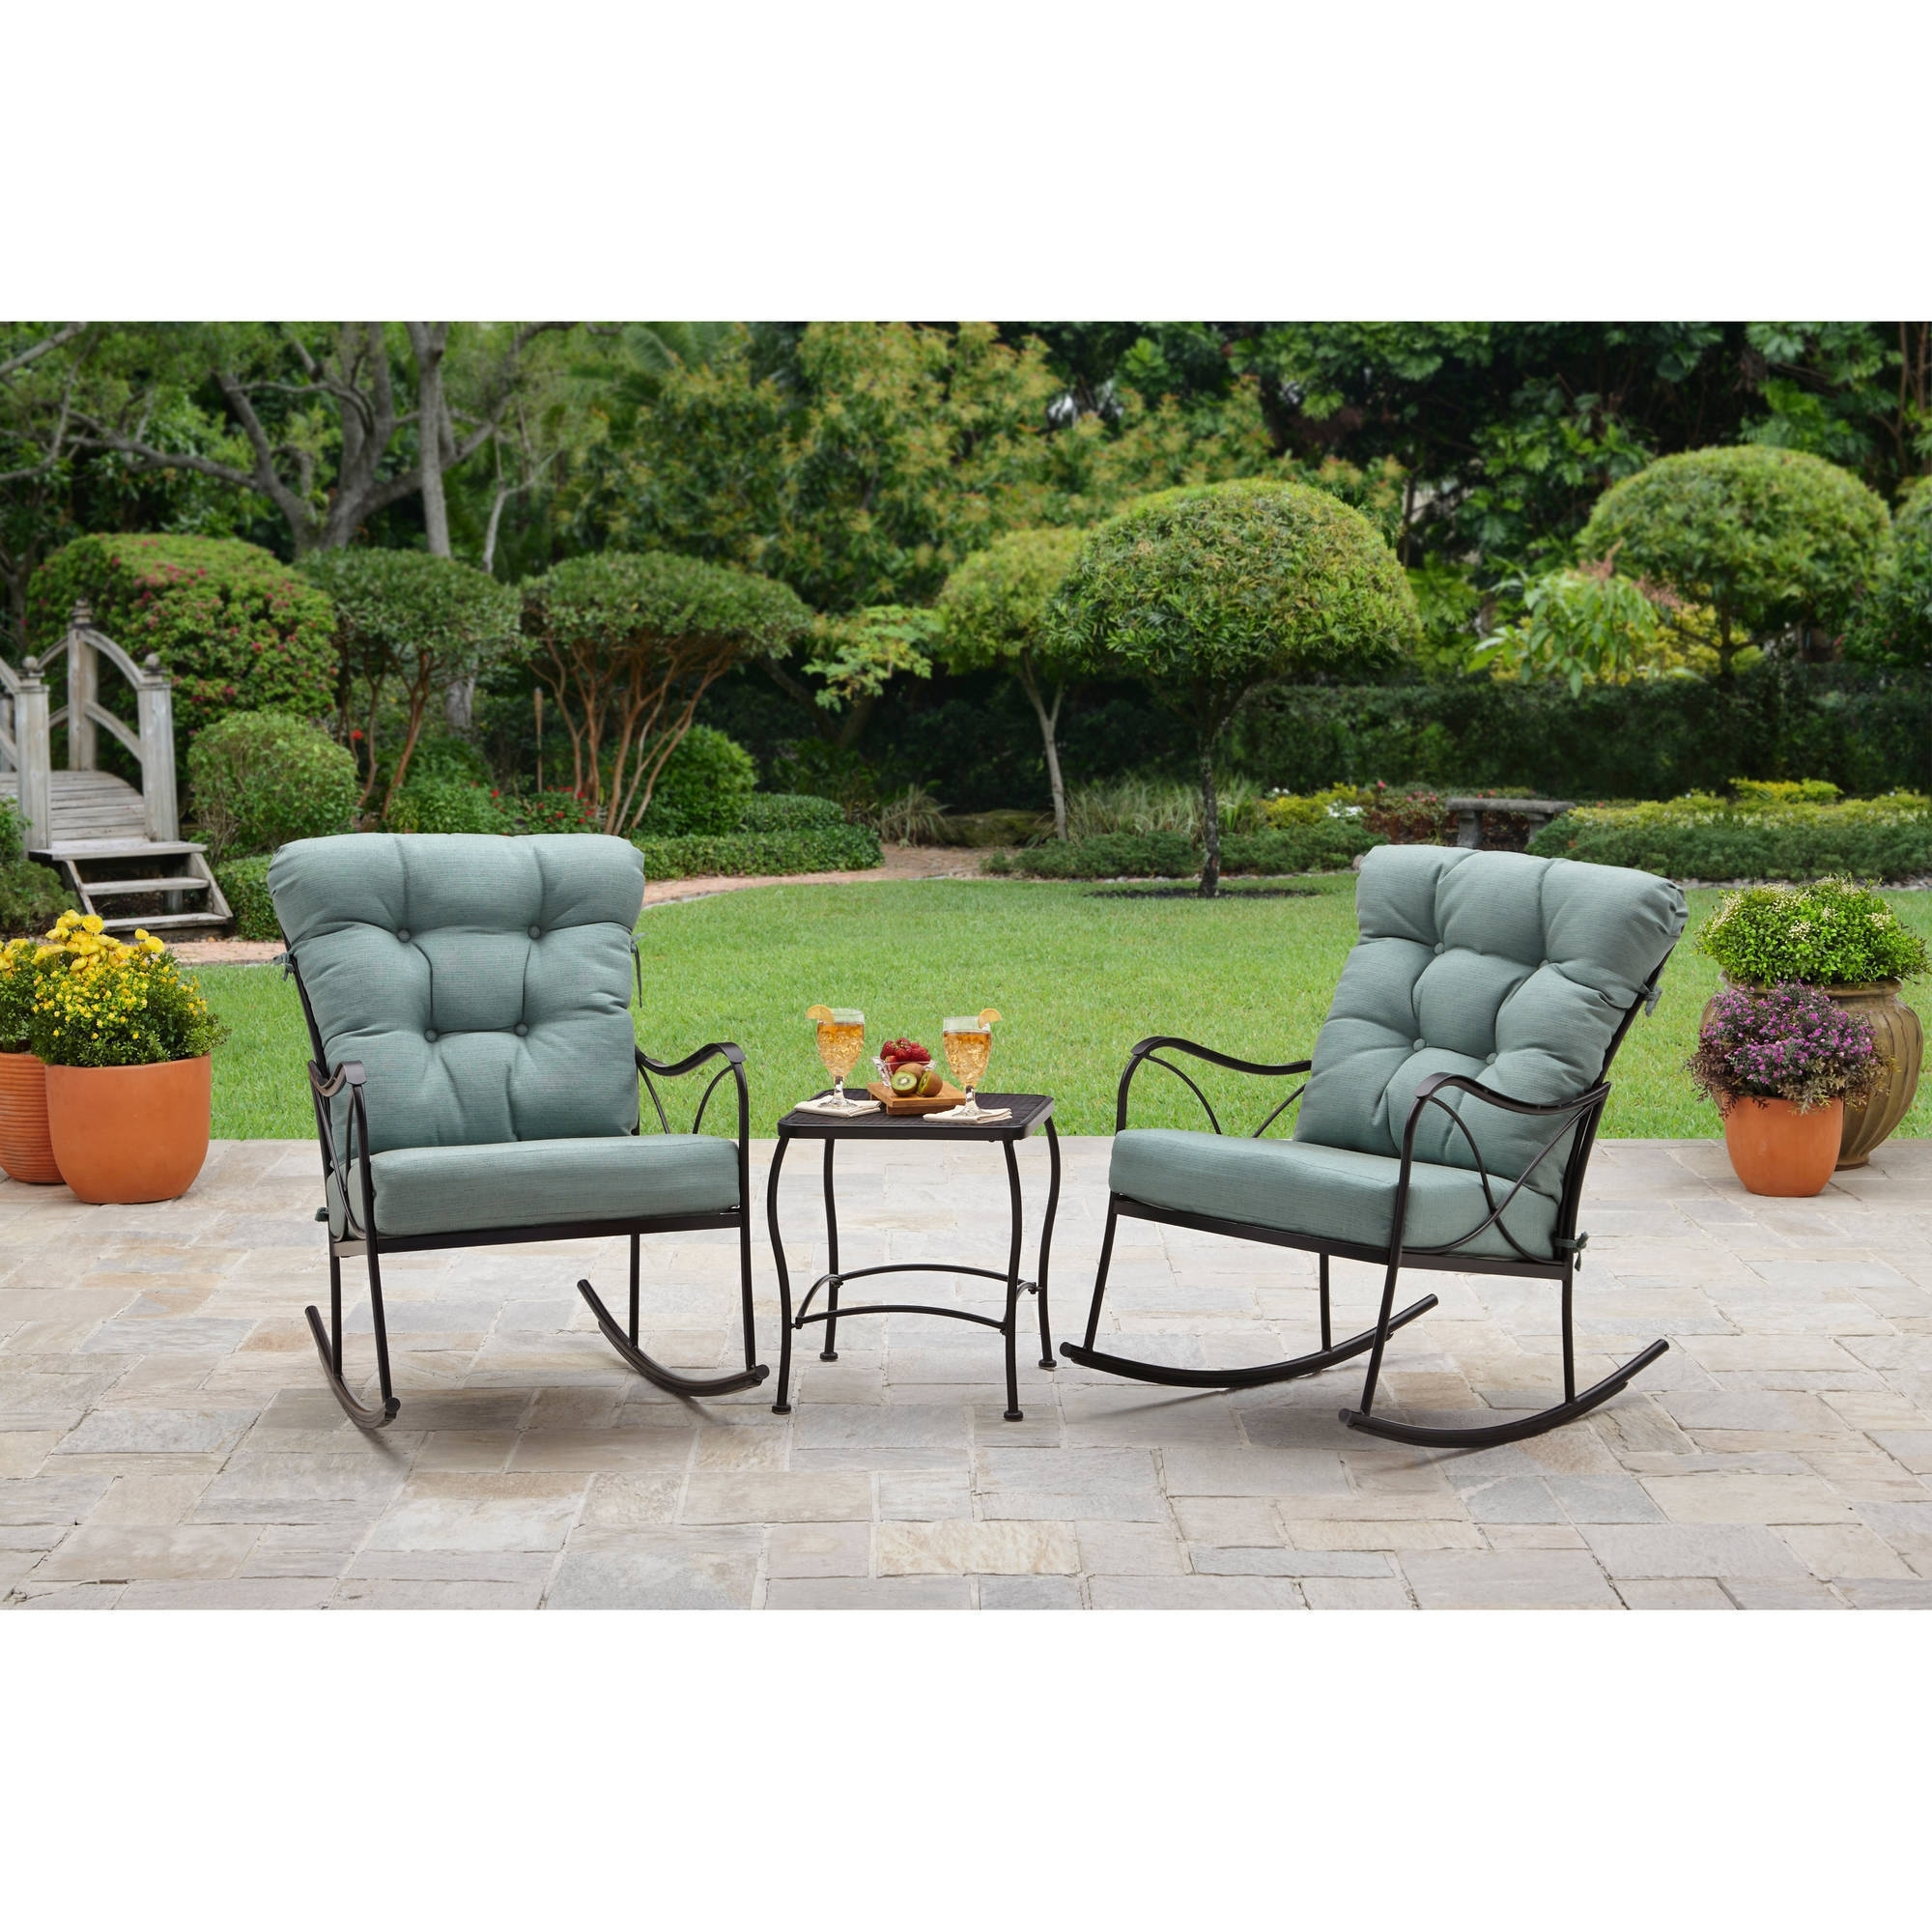 Latest Better Homes And Gardens Seacliff Patio Furniture Collection In Used Patio Rocking Chairs (View 12 of 15)